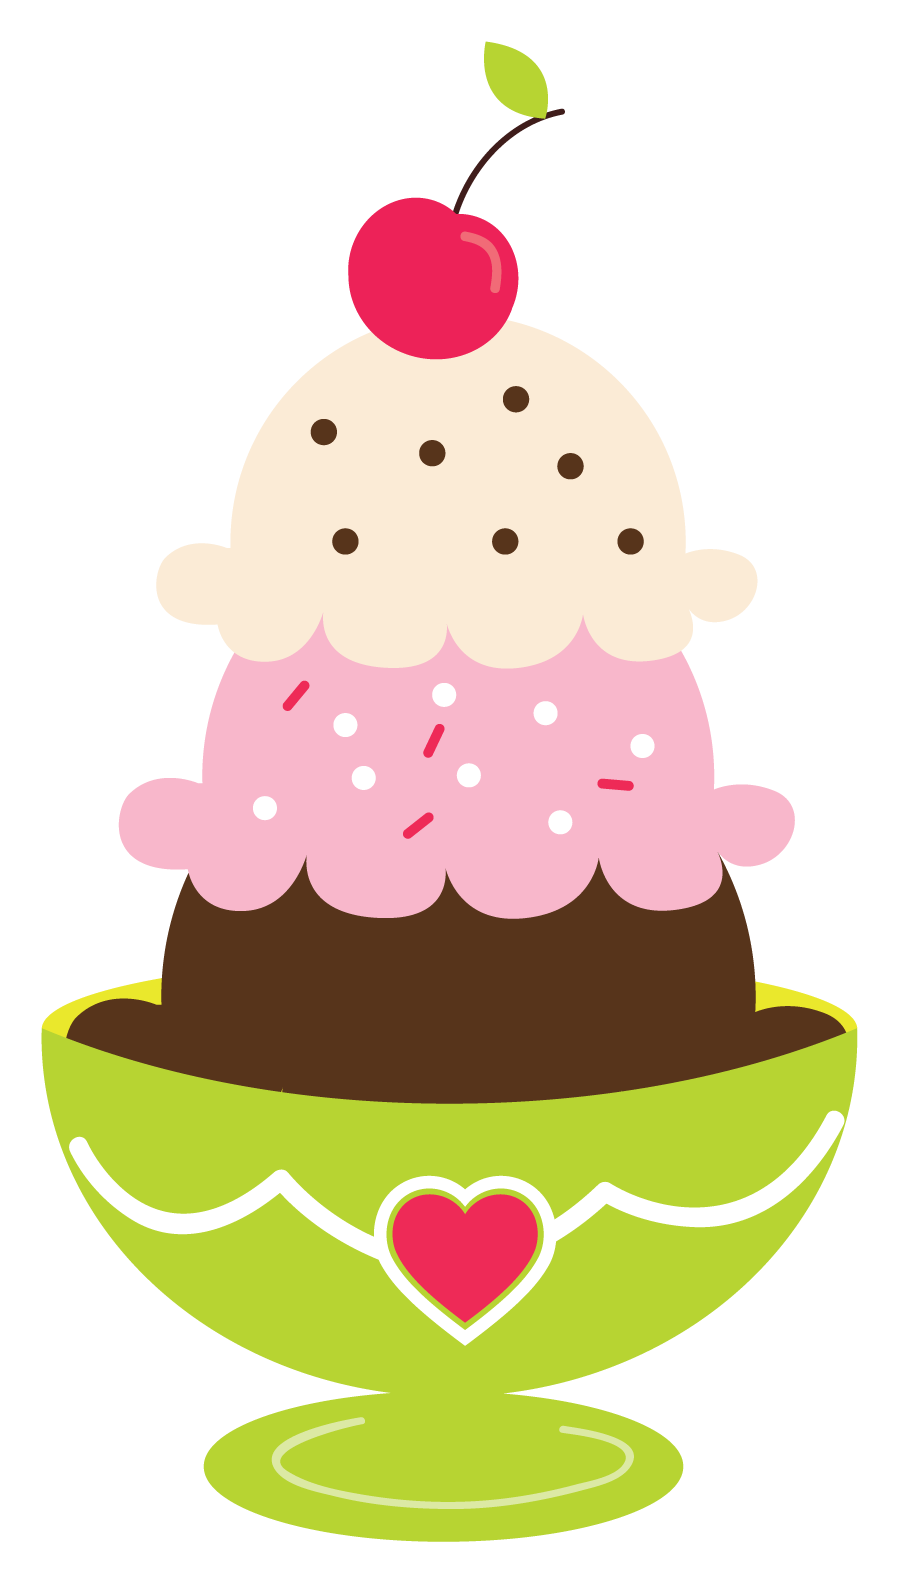 We All Scream For Ice Cream Clipart Pand-We All Scream For Ice Cream Clipart Panda Free Clipart Images-18